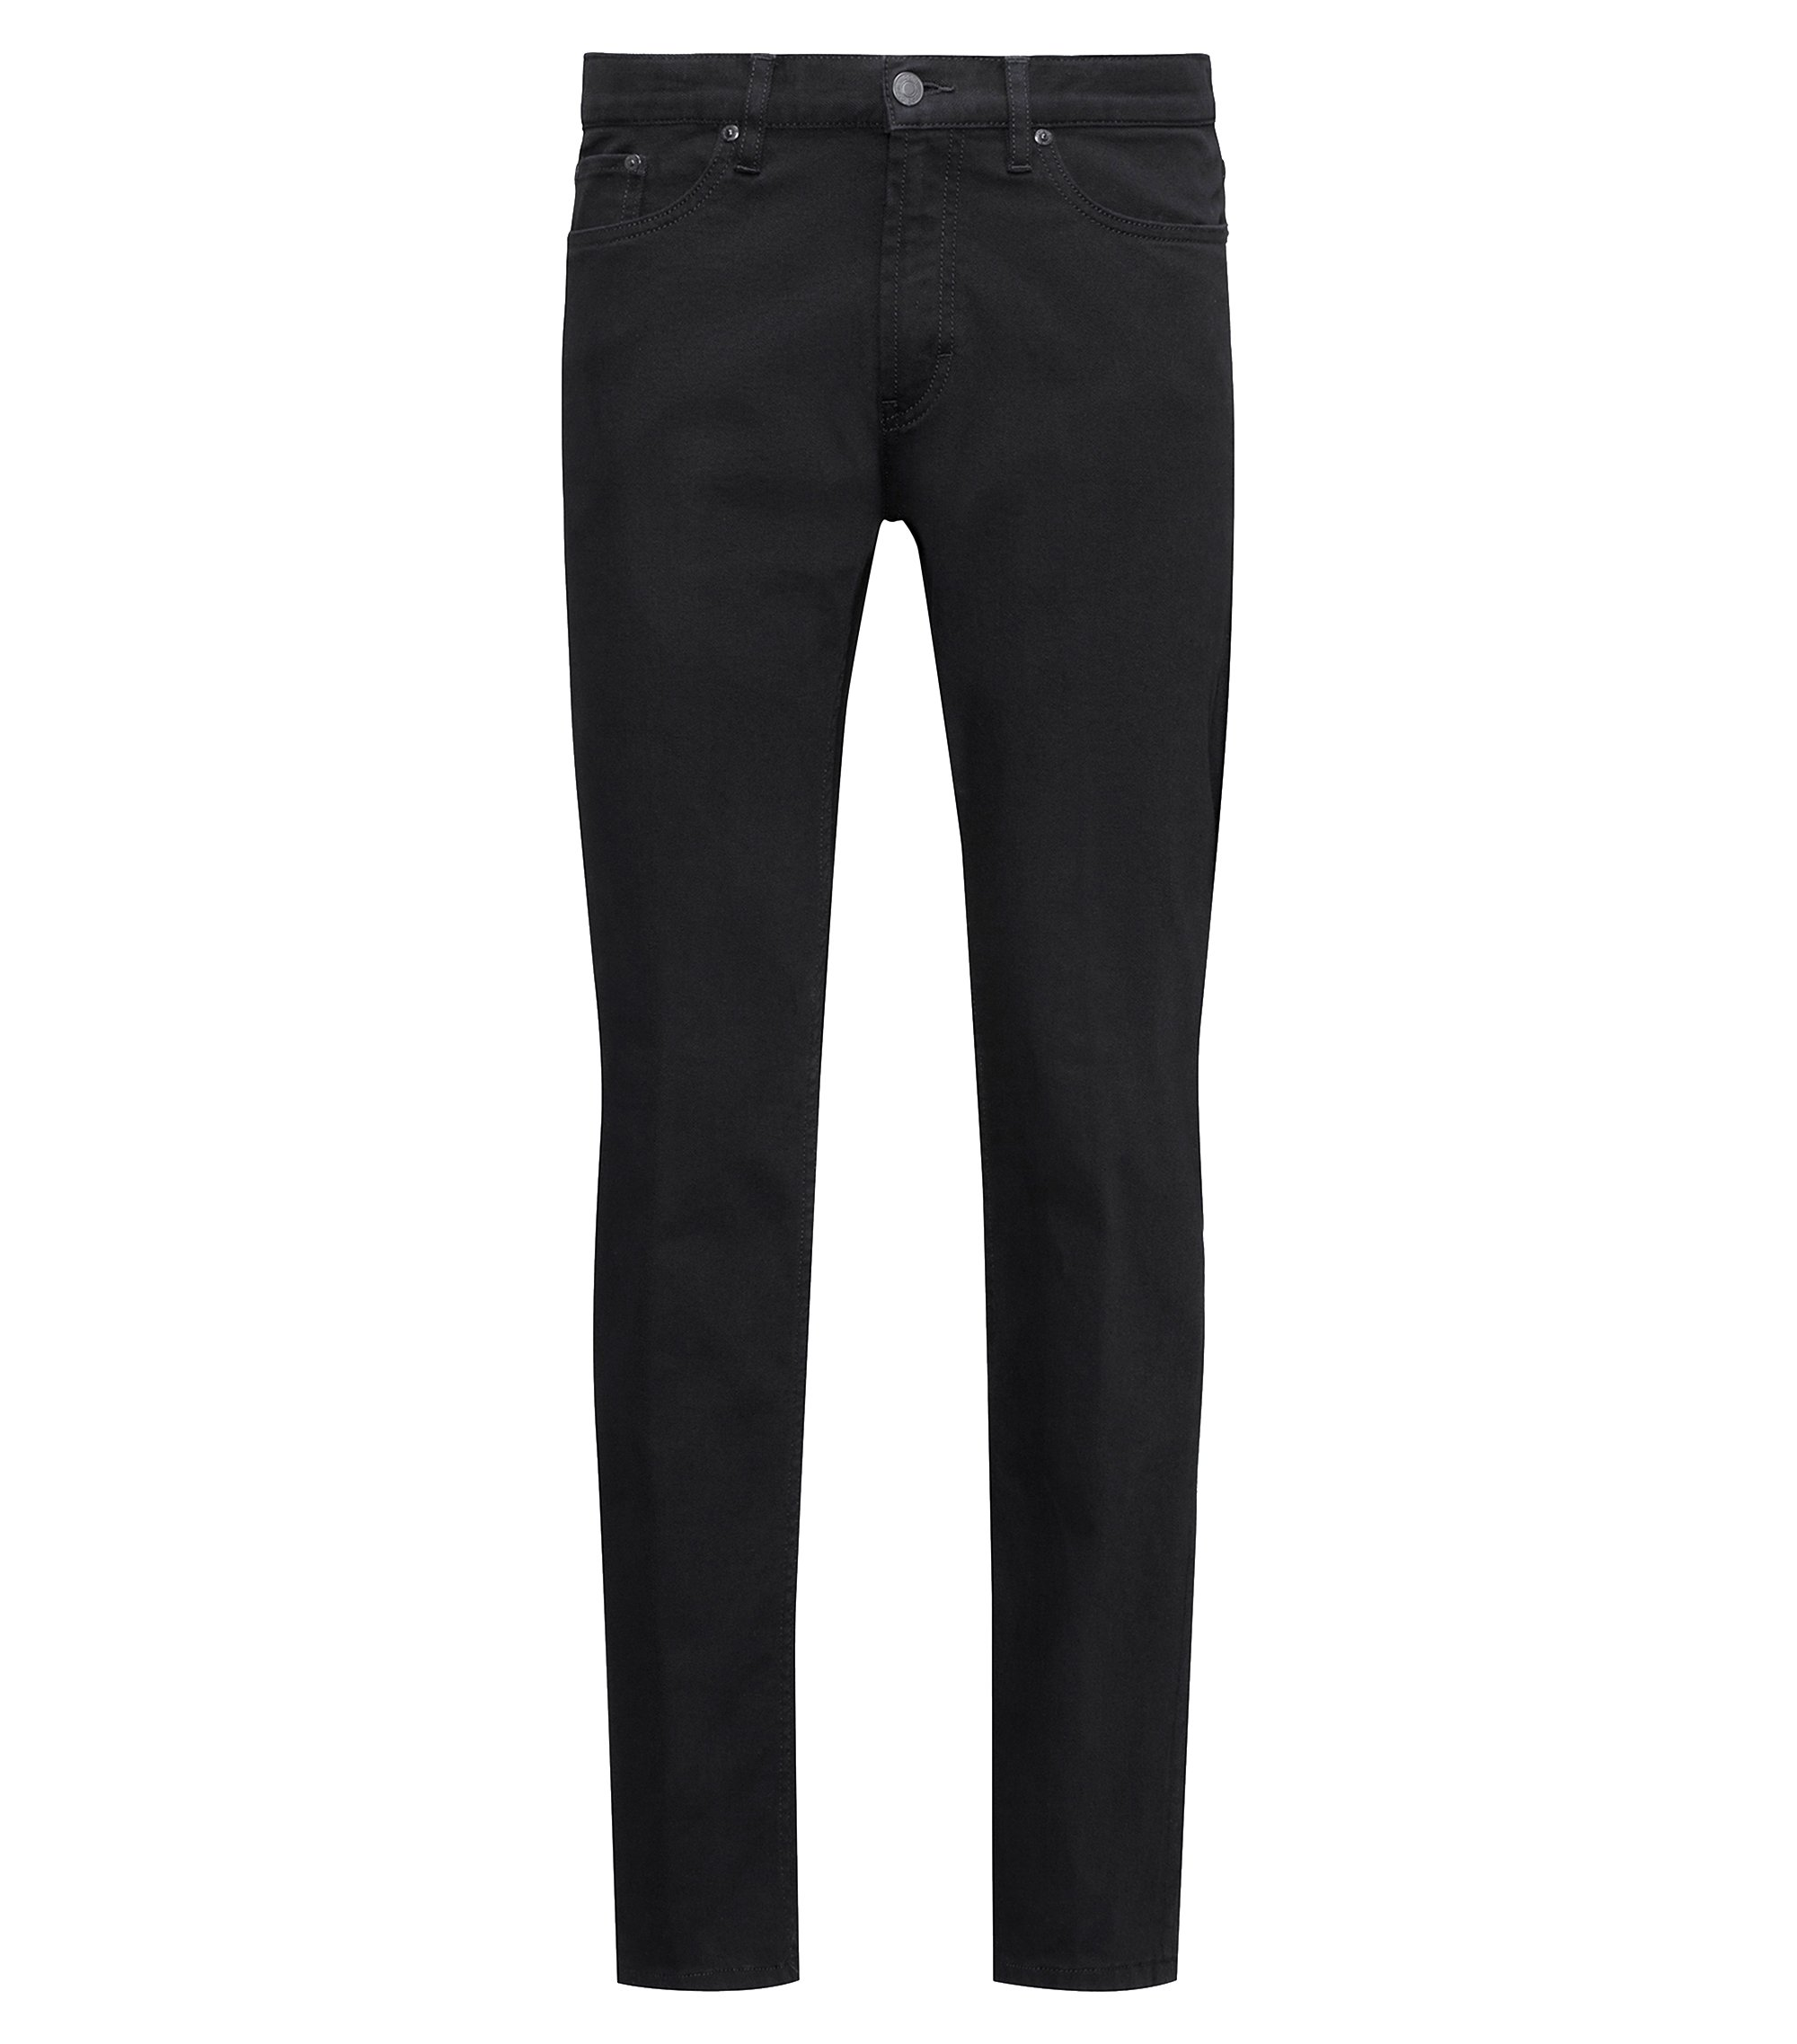 Jean Regular Fit en denim stretch noir, Noir